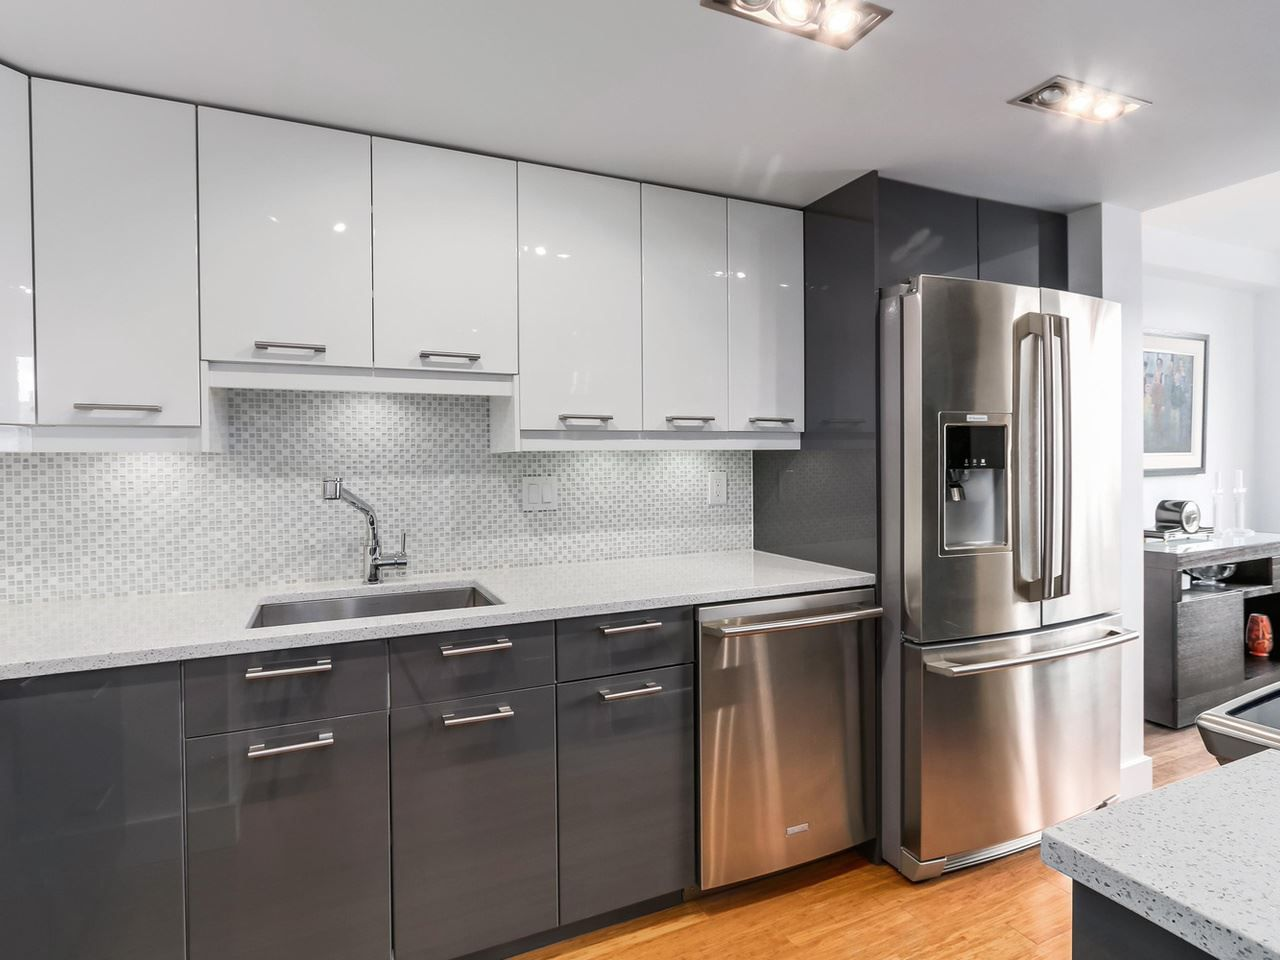 Main Photo: 902 1616 W 13TH AVENUE in Vancouver: Fairview VW Condo for sale (Vancouver West)  : MLS®# R2087677